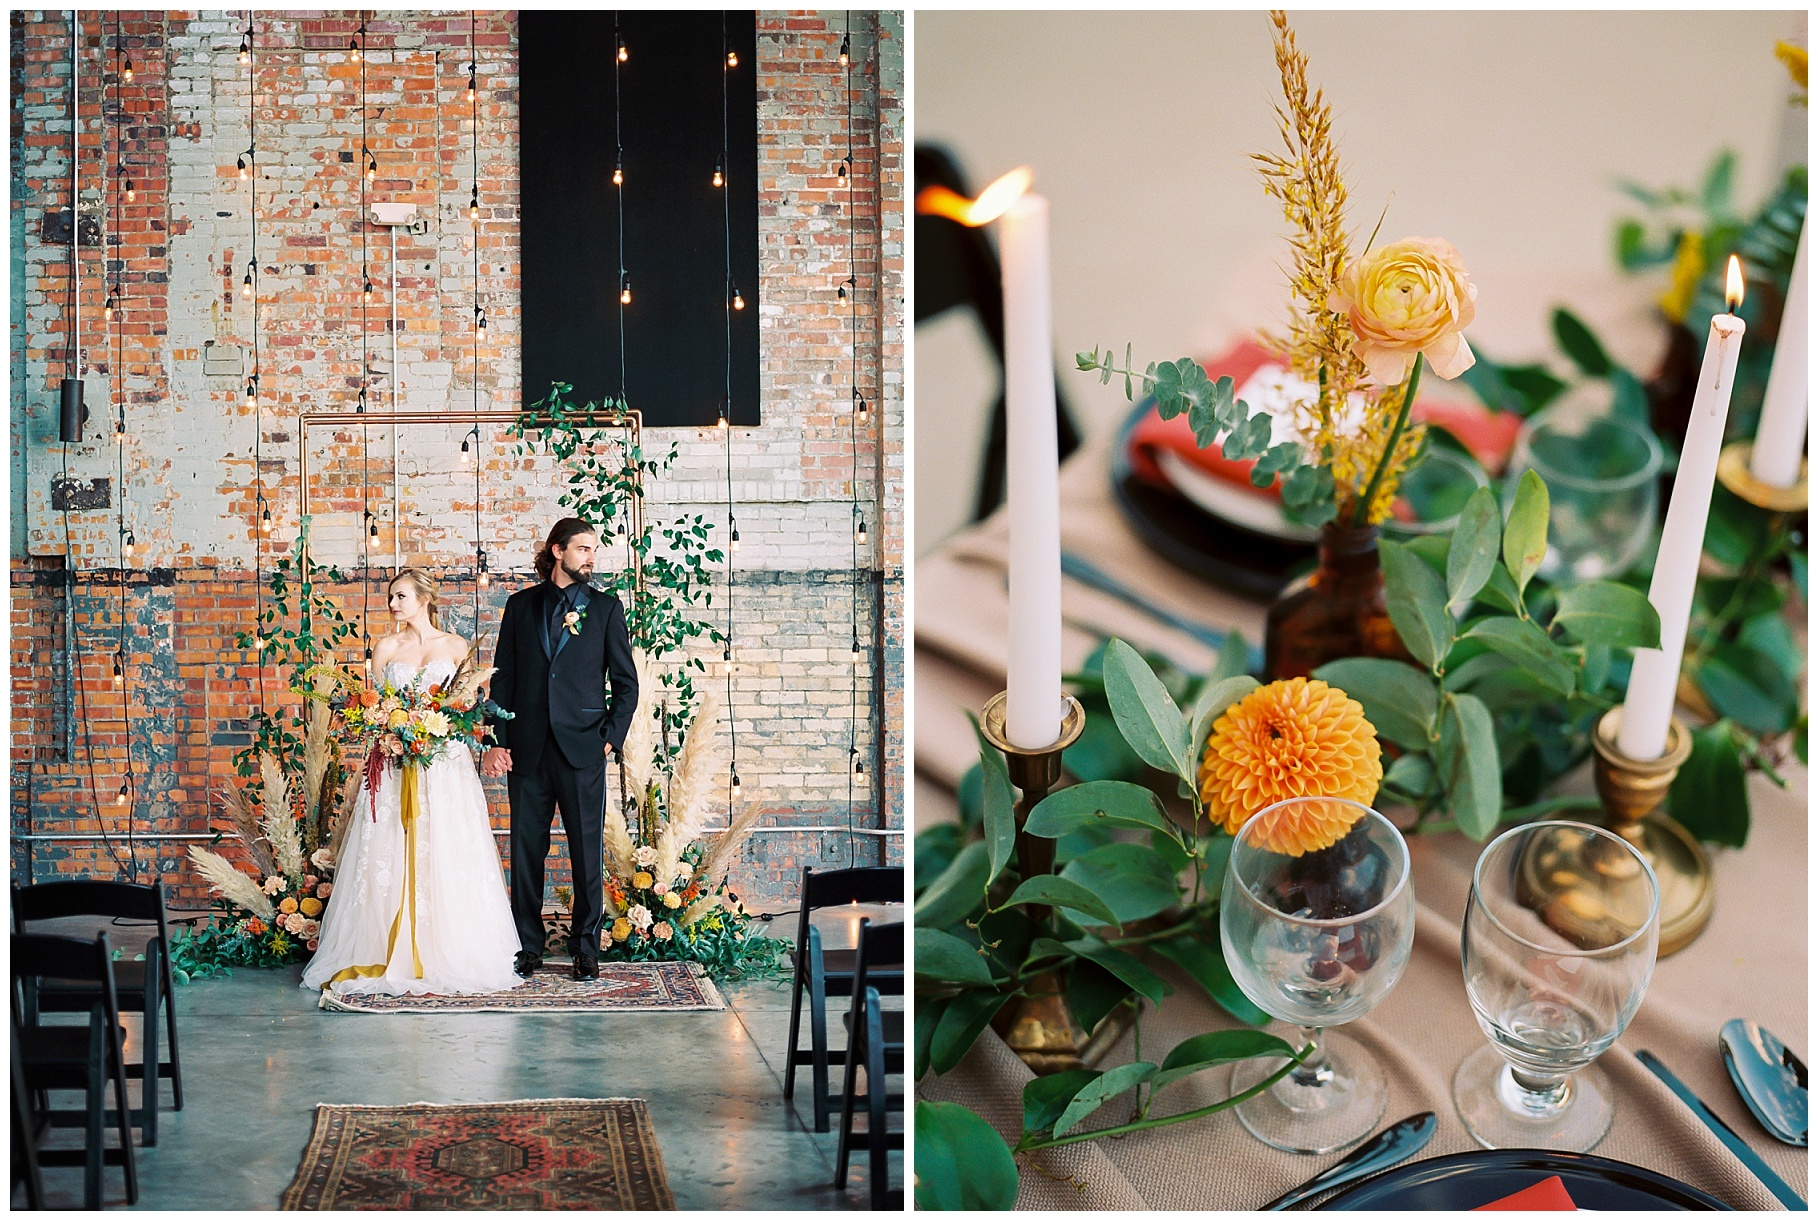 Urban Romance Wedding with Copper Accents at The Millbottom by Kelsi Kliethermes Photography Best Columbia Missouri Wedding Photographer_0063.jpg